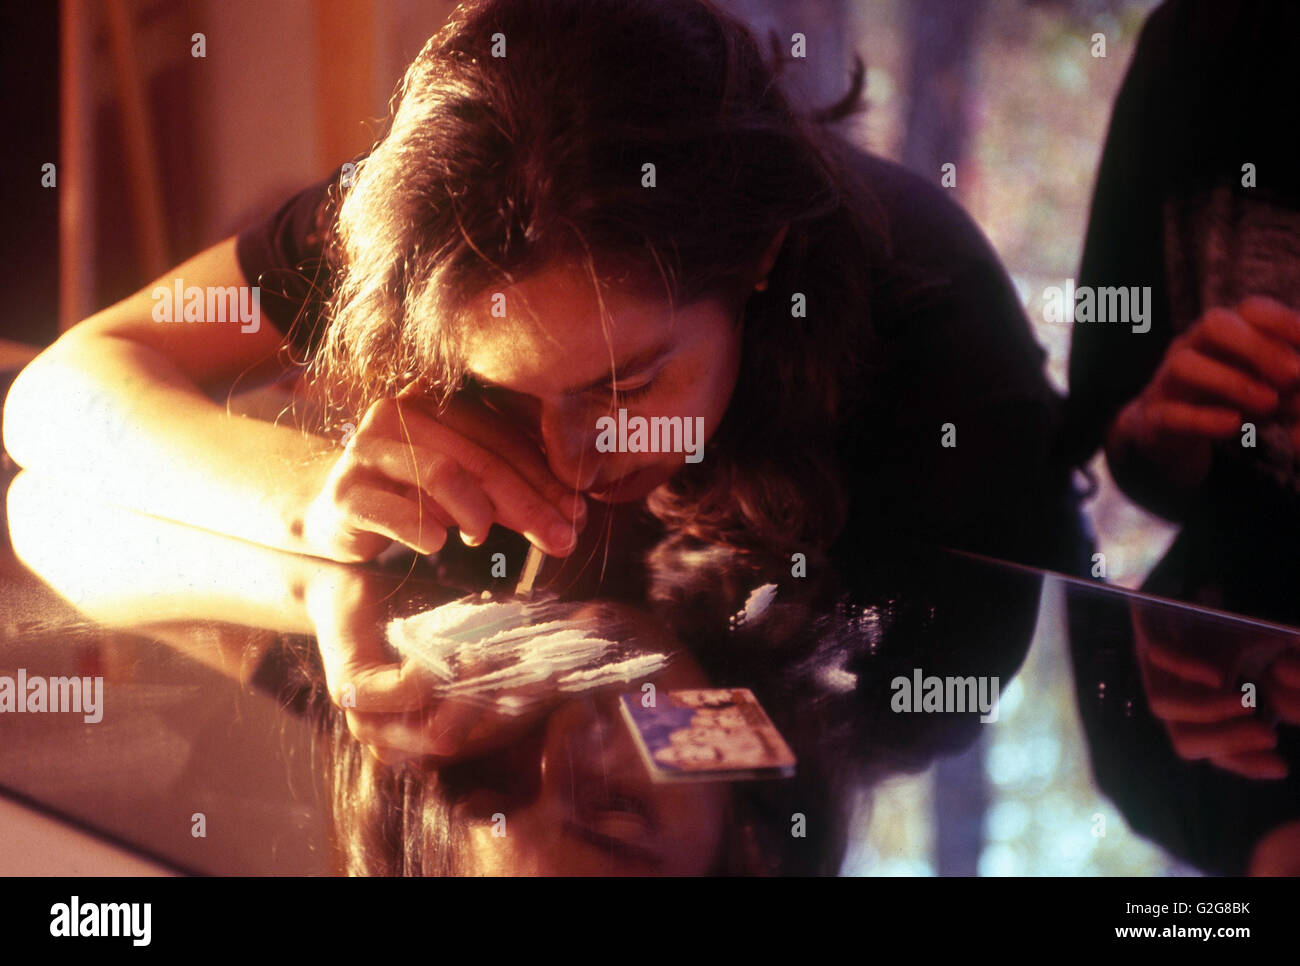 A woman snorting cocaine. - Stock Image